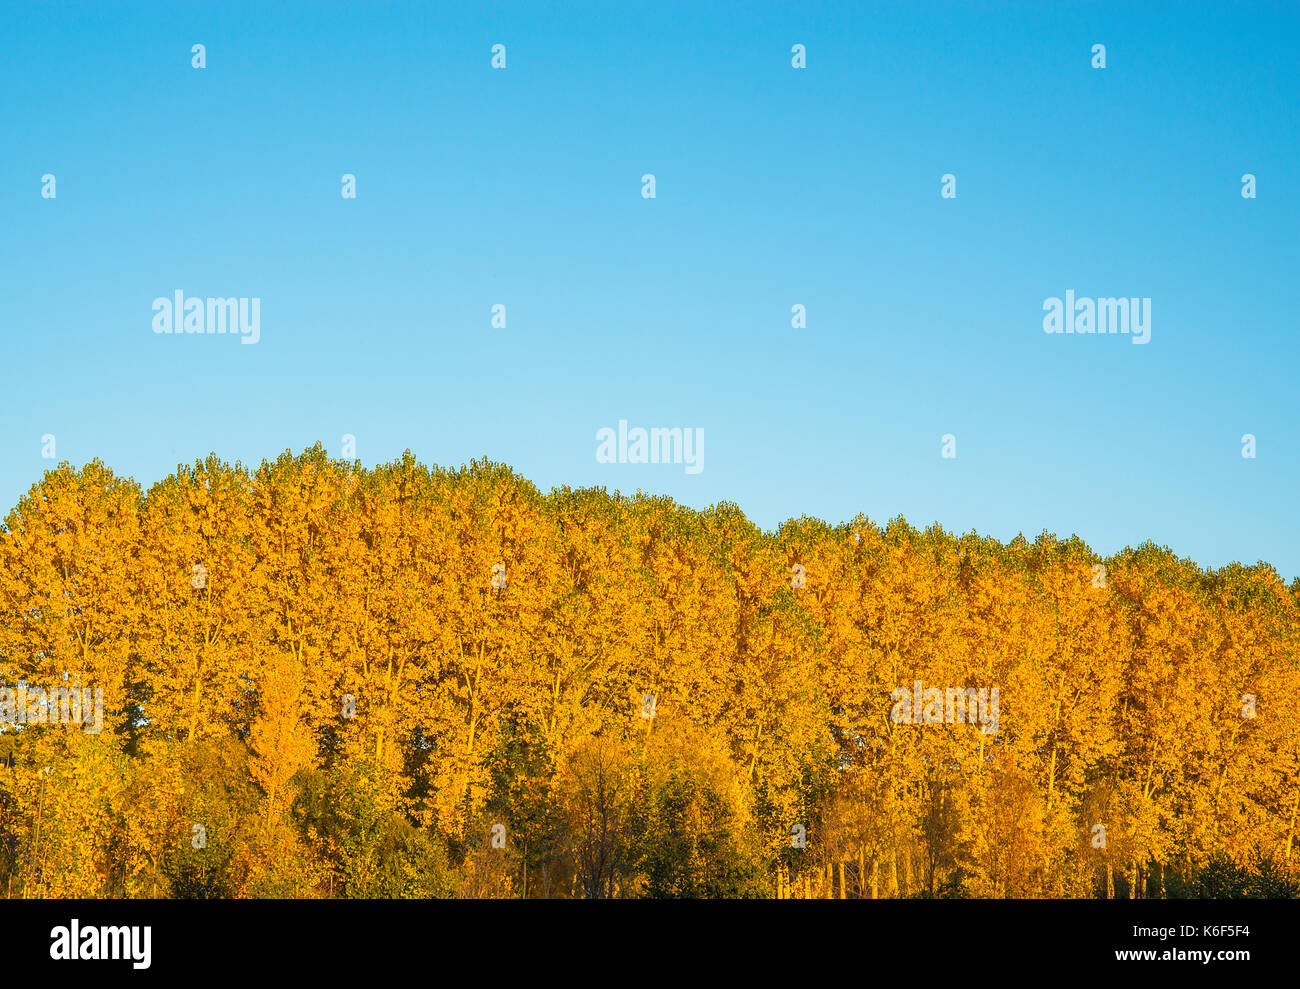 Tree tops in Autumn against blue sky. - Stock Image